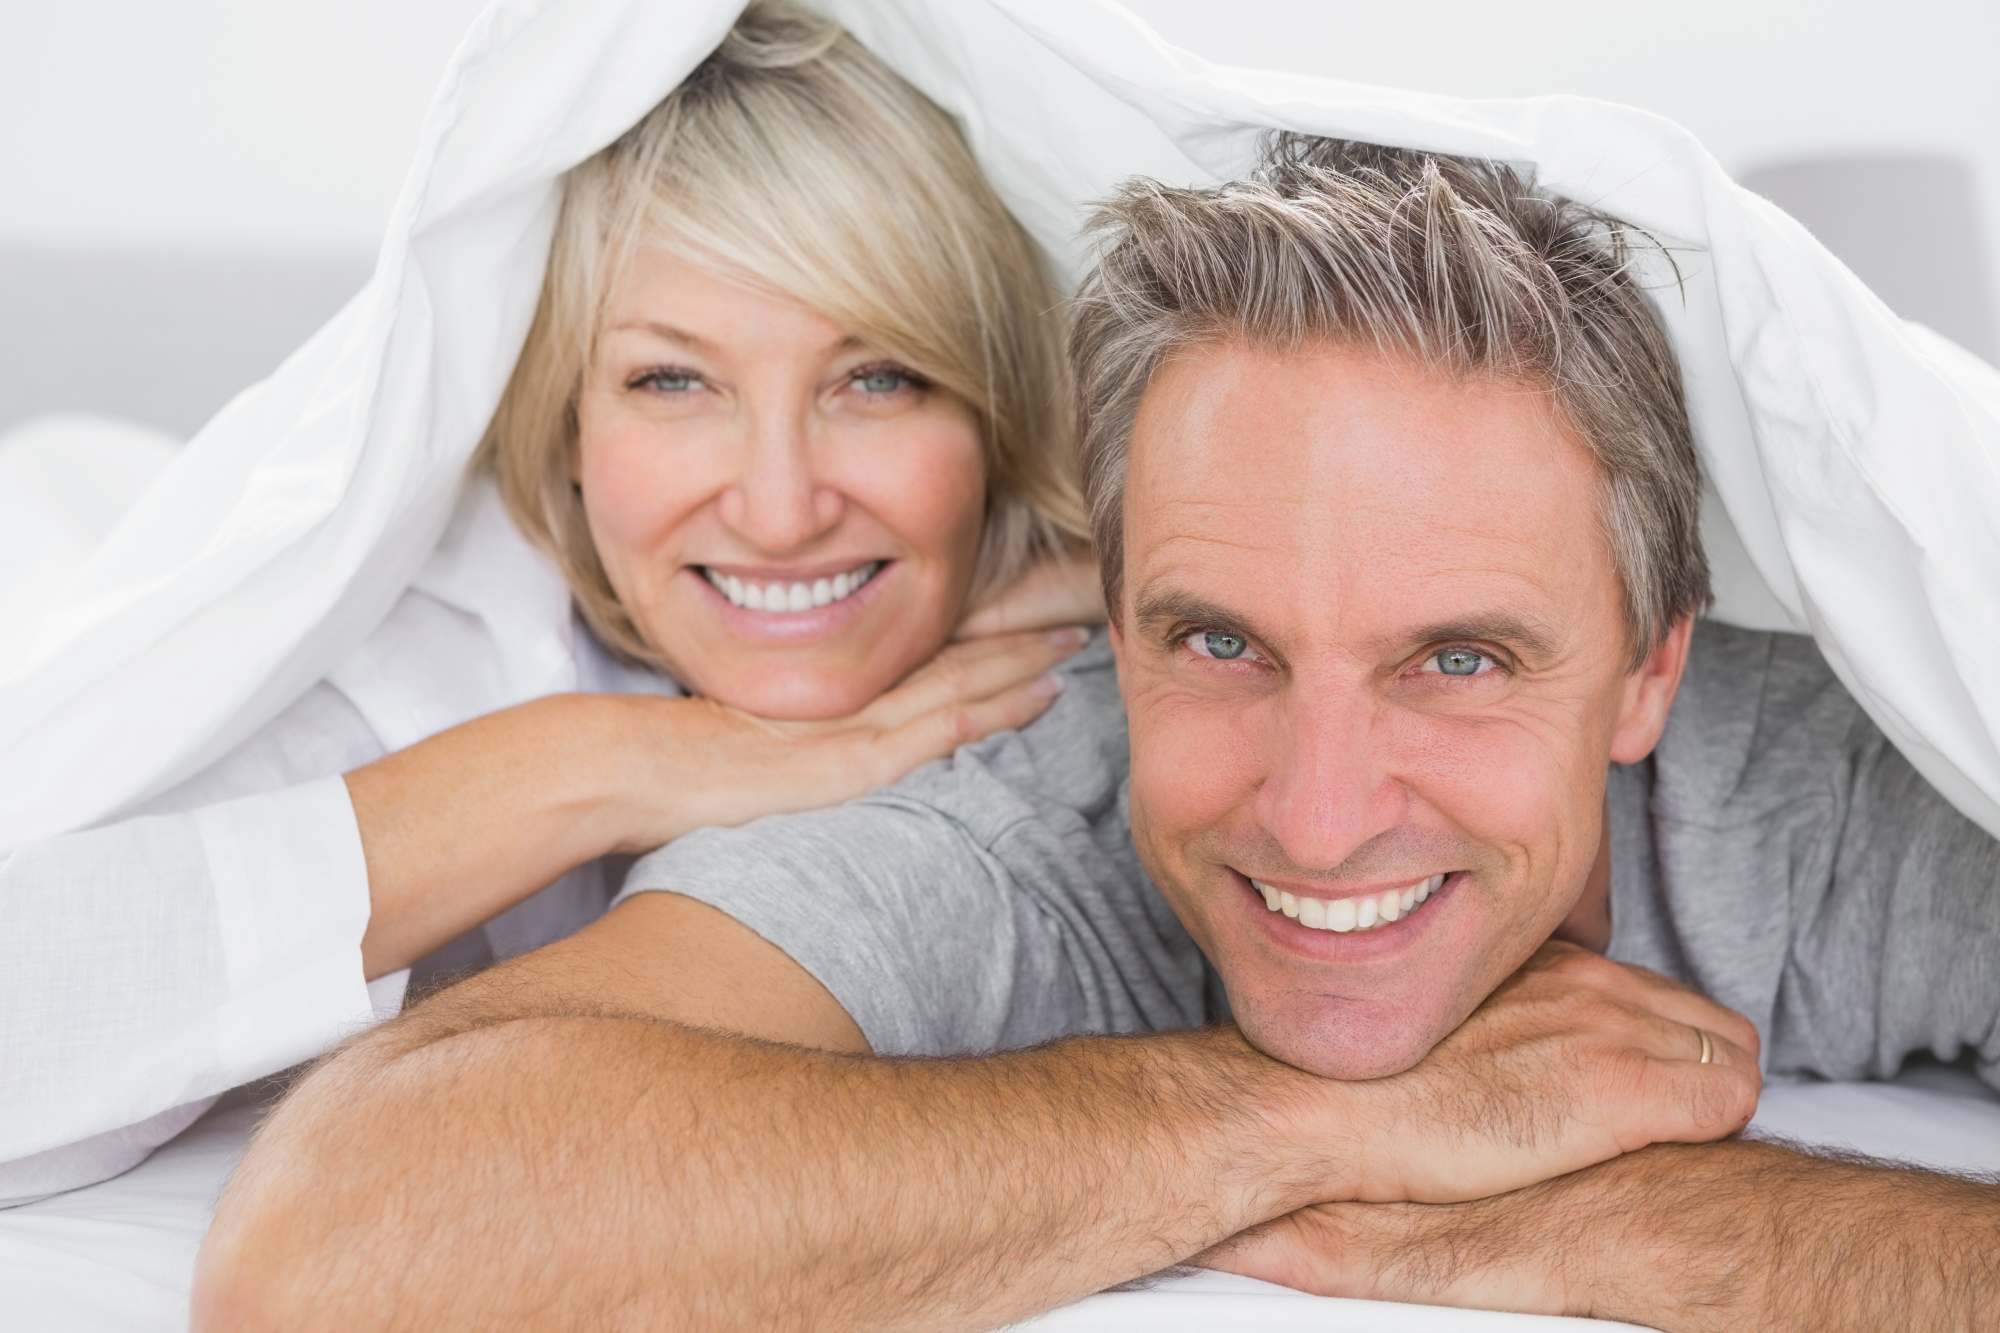 """Let's Talk About Sex: When Being Too Busy Interferes With """"Getting Busy"""". Man and woman happy in bed together."""